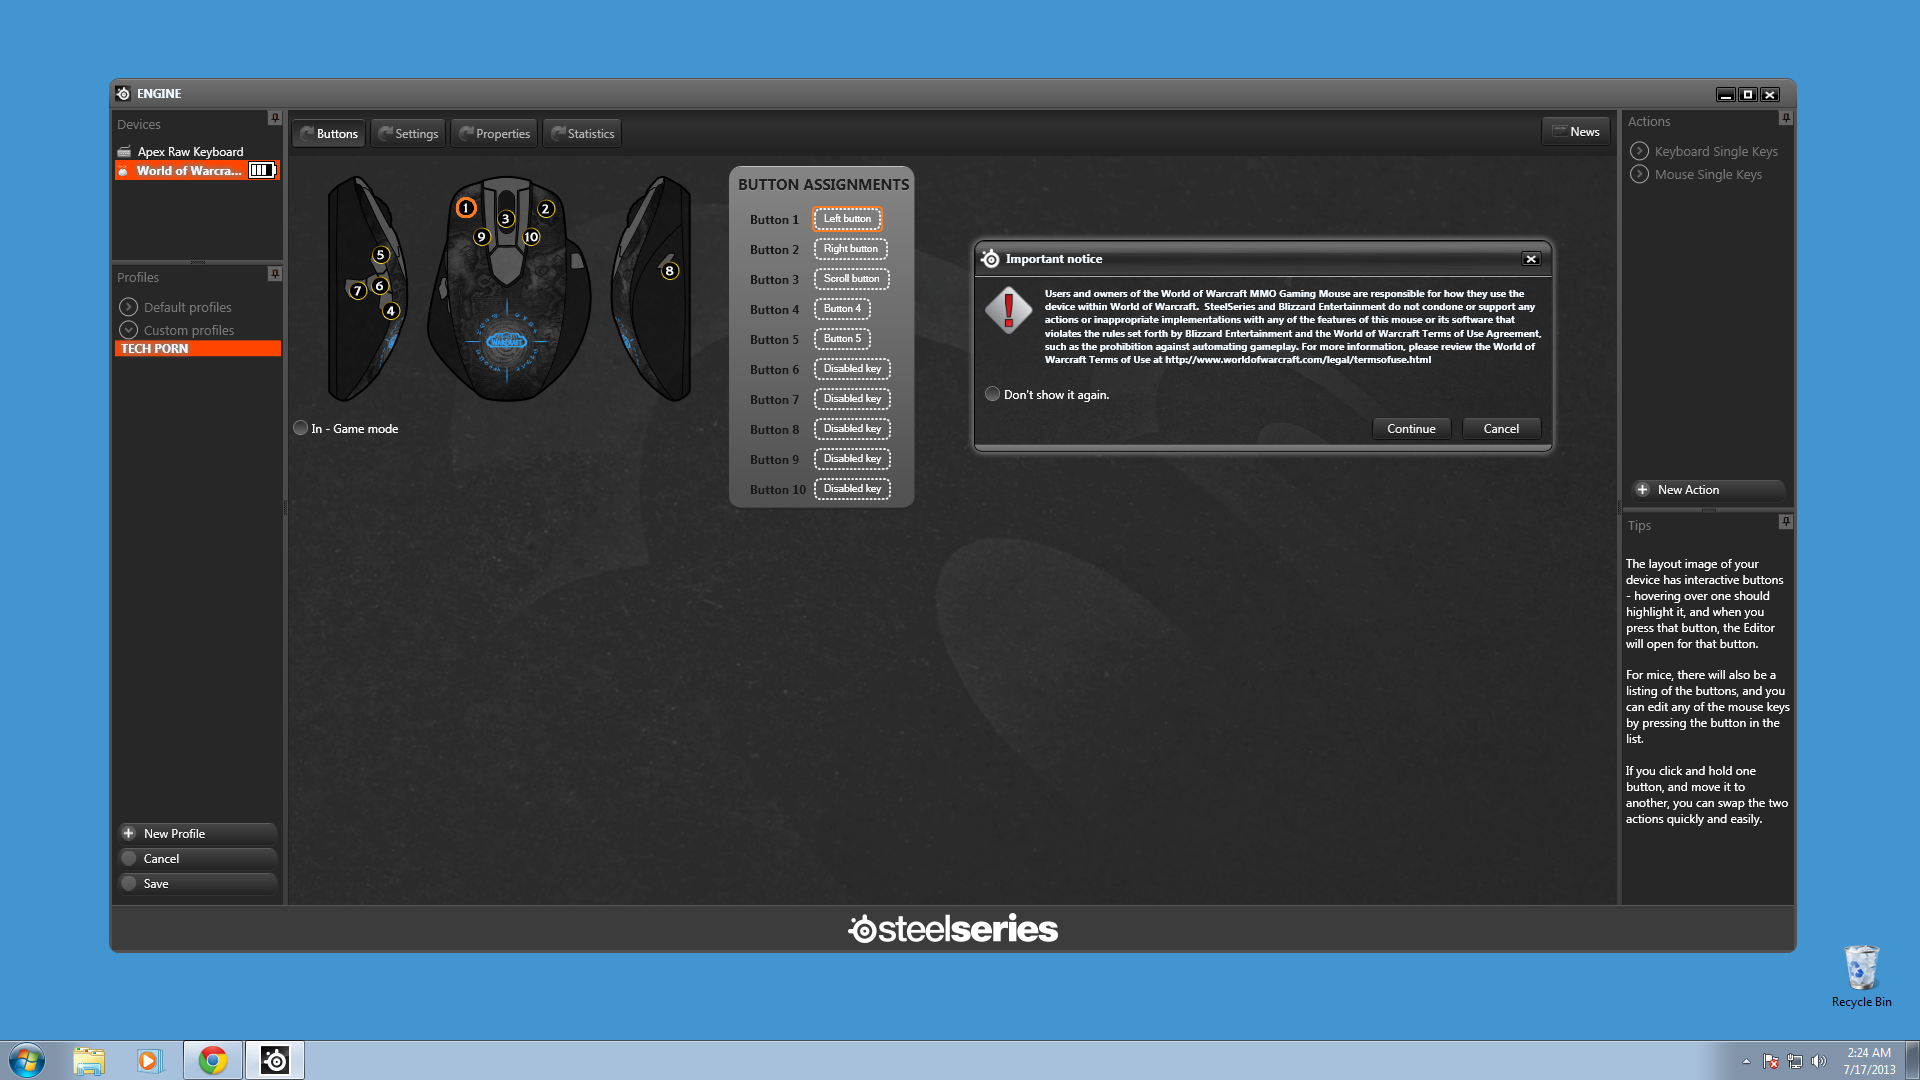 SteelSeries-Wireless-MMO-Gaming-Mouse-1